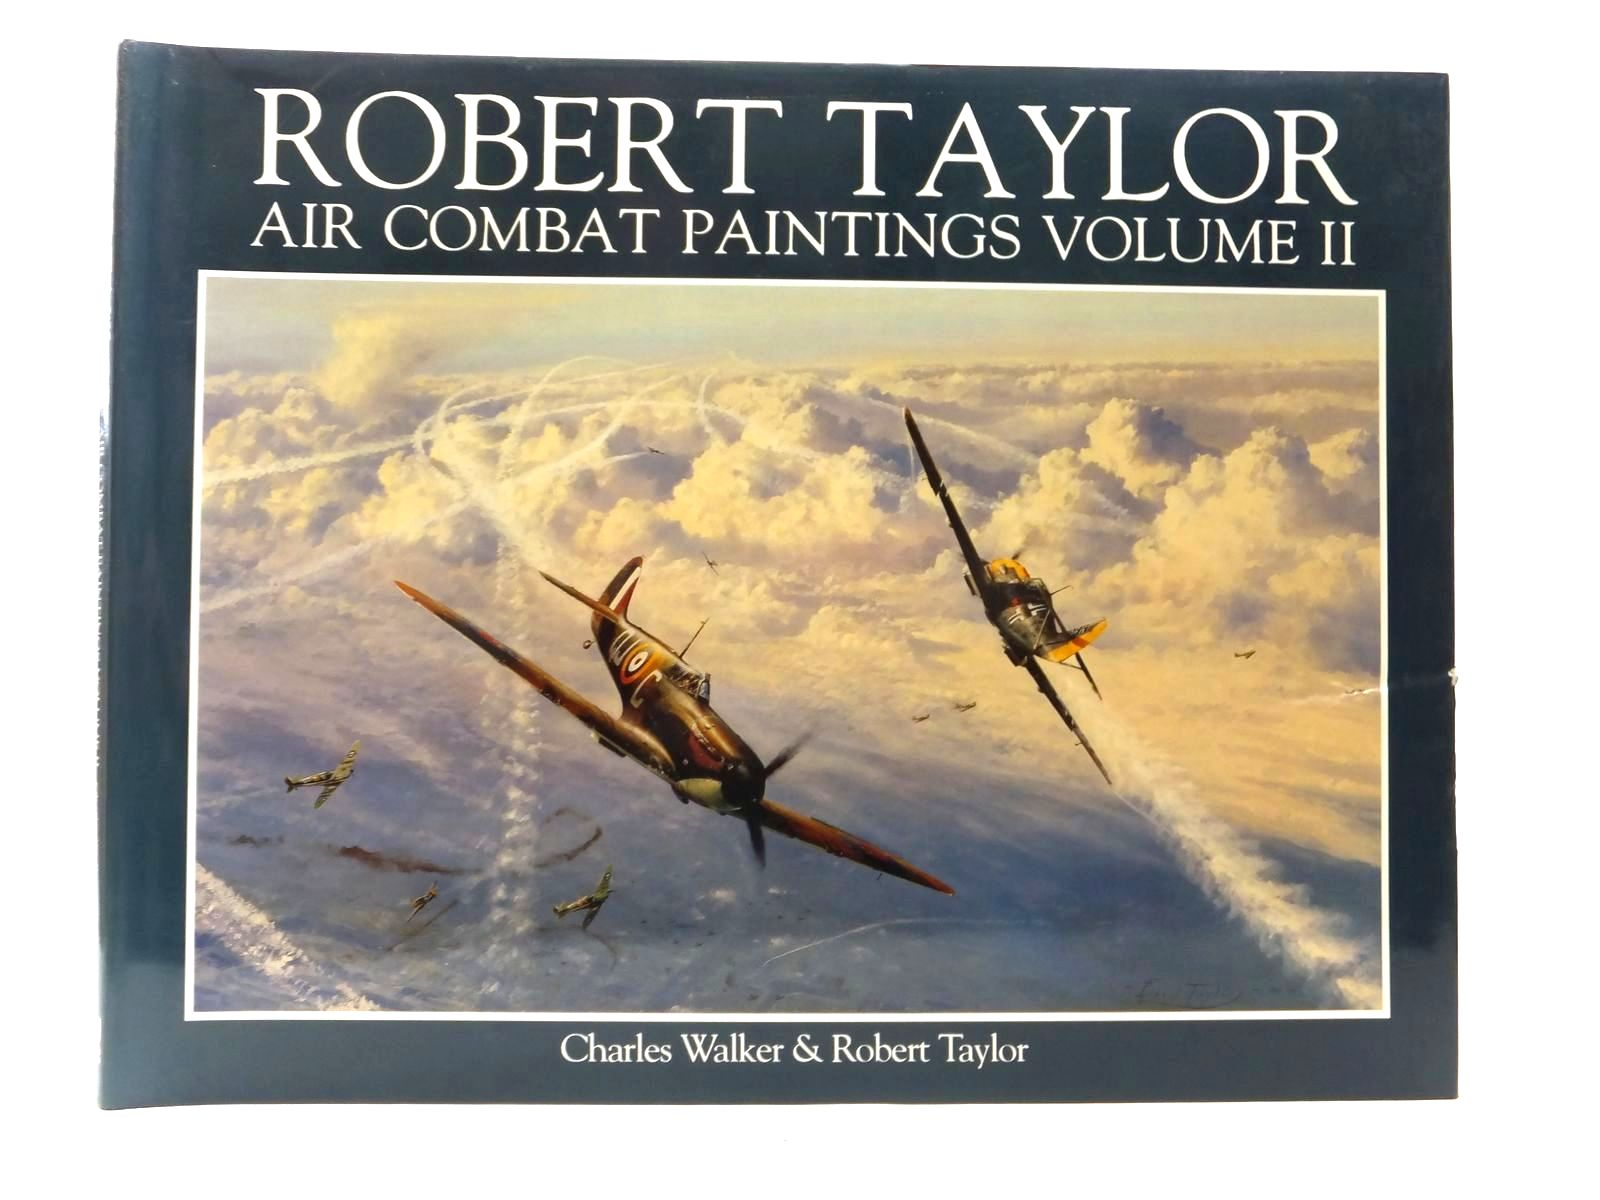 Photo of ROBERT TAYLOR AIR COMBAT PAINTINGS VOLUME II written by Walker, Charles illustrated by Taylor, Robert published by David & Charles (STOCK CODE: 1609519)  for sale by Stella & Rose's Books